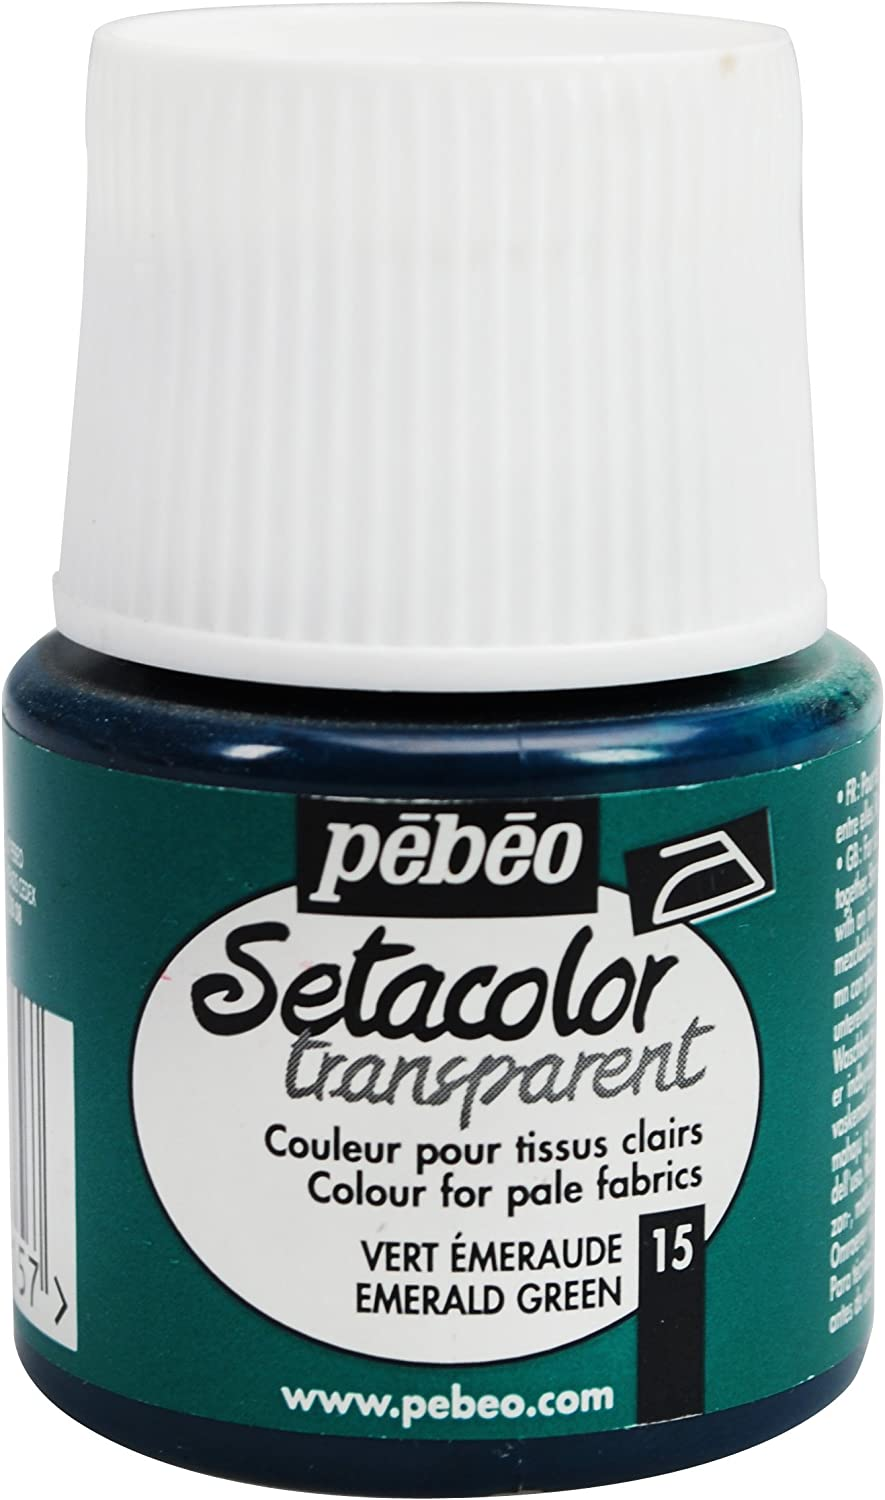 Pebeo Setacolor Light Fabrics 45-Milliliter 70% OFF Outlet Emeral Bottle Paint New Shipping Free